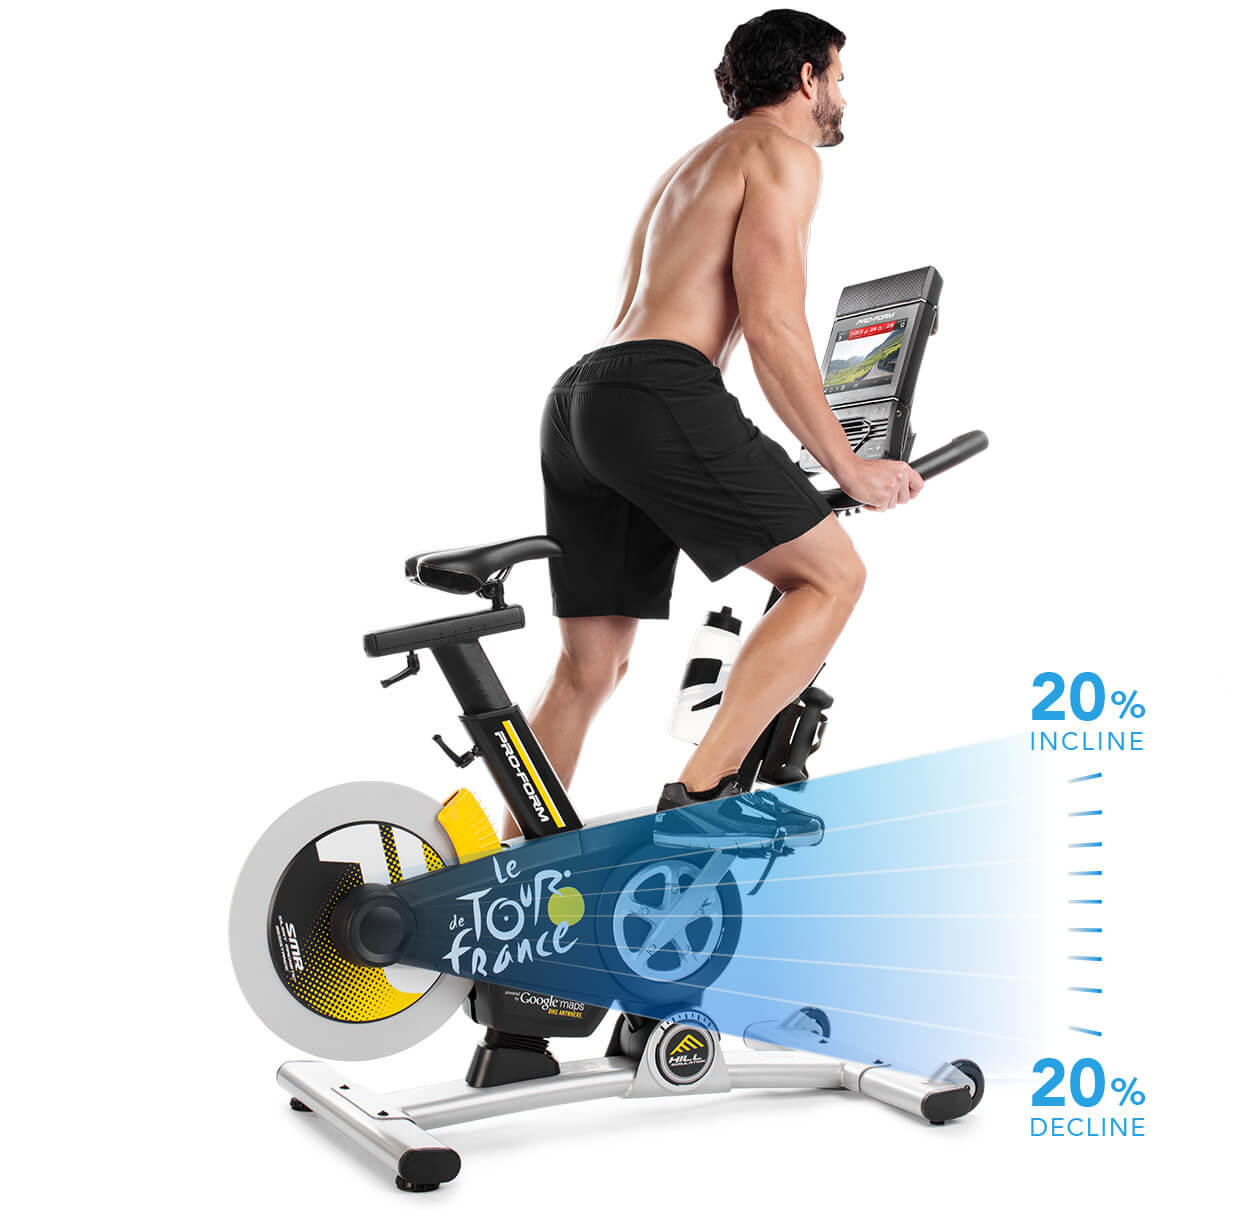 Proform Exercise Bikes Studio Bike Pro  gallery image 12